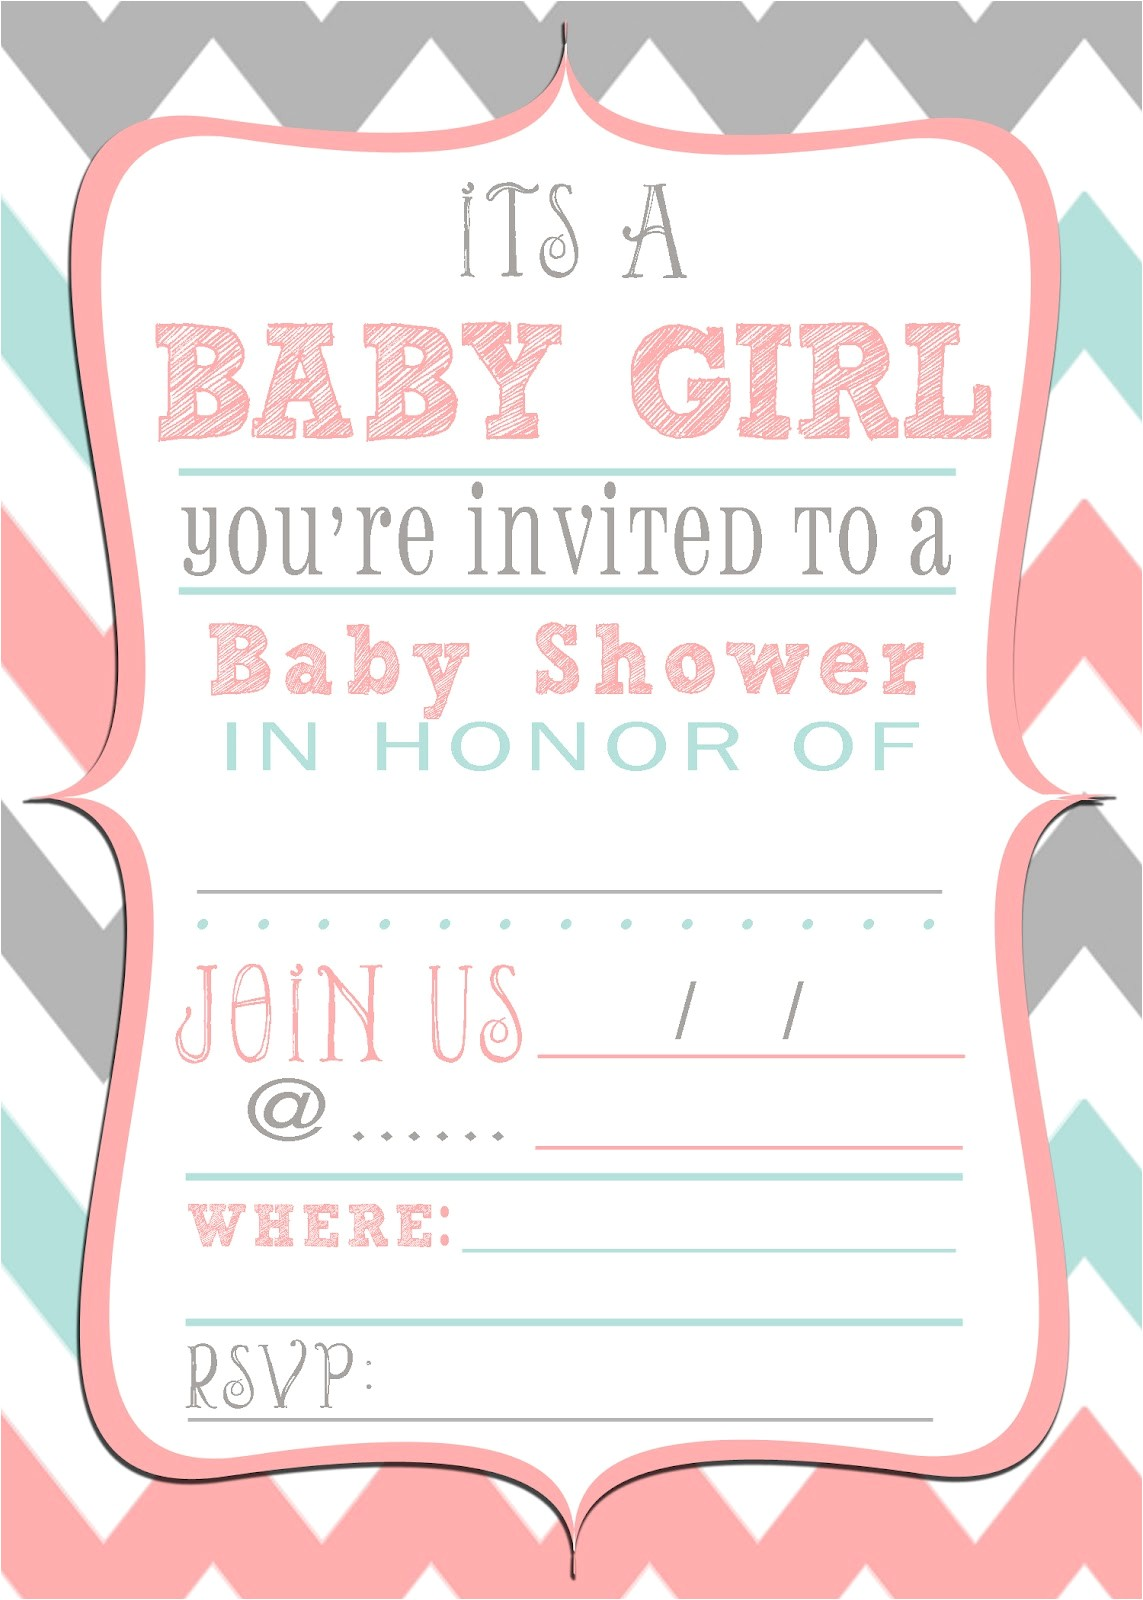 Baby Shower Invites Free Downloads Mrs This and that Baby Shower Banner Free Downloads